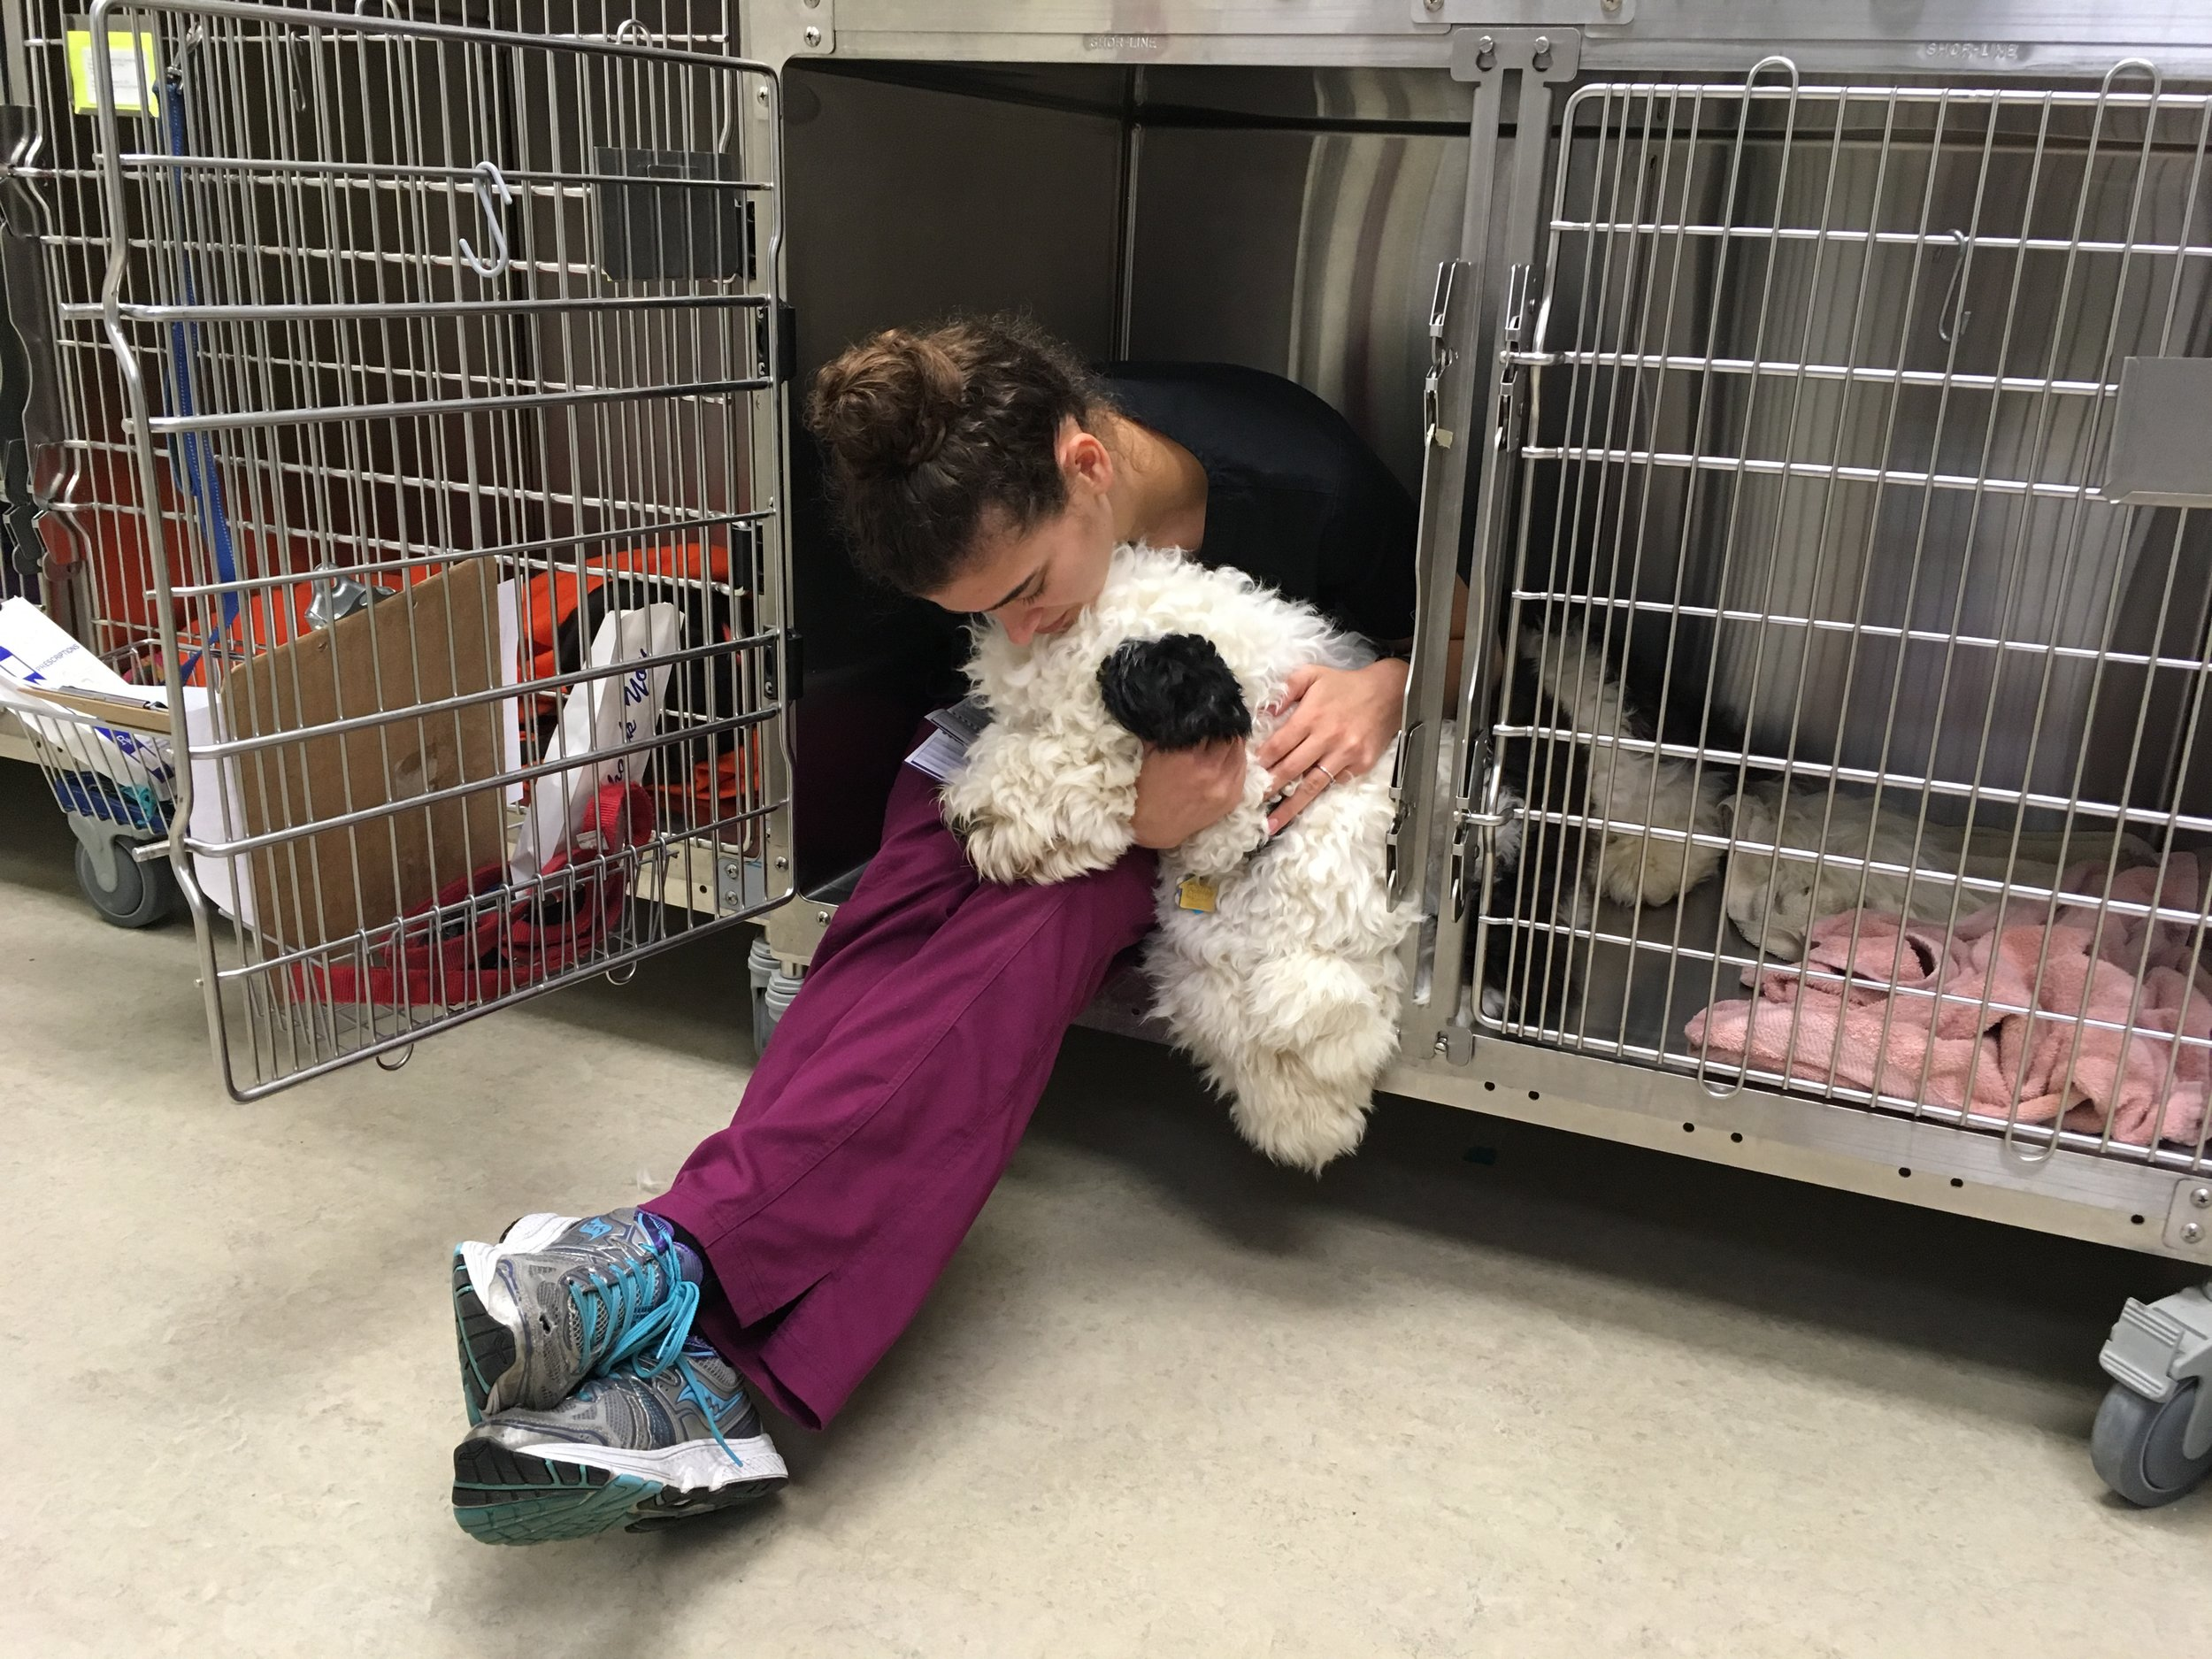 Clarendon Animal Care Veterinary Clinic Arlington Virginia Assistant caring for a dog